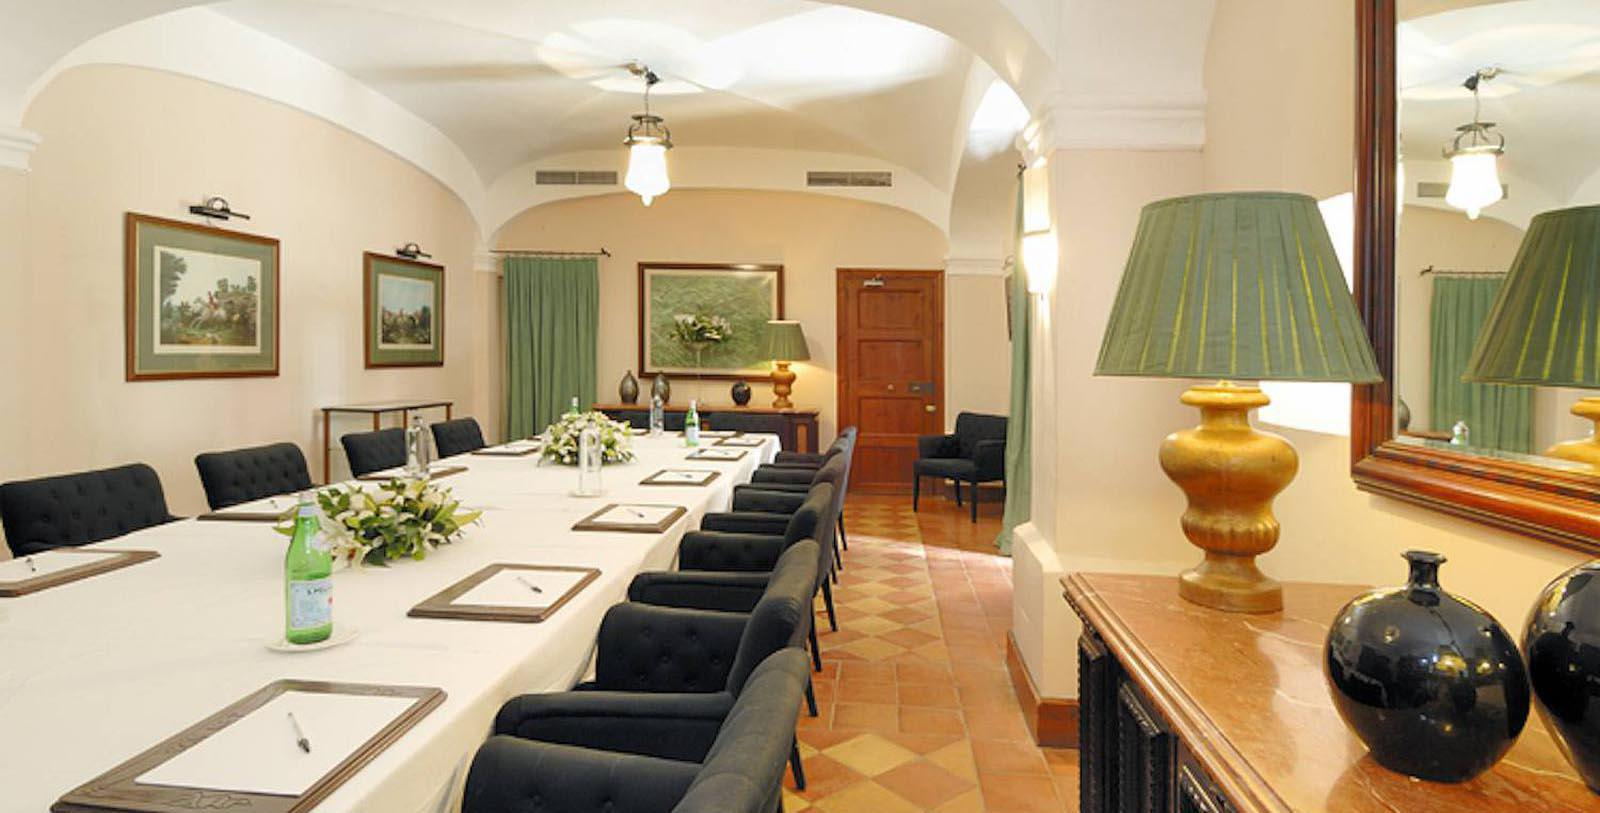 Image of Boardroom, Gran Hotel Son Net, Puigpunyent, Spain, 1672, Member of Historic Hotels Worldwide, Experience